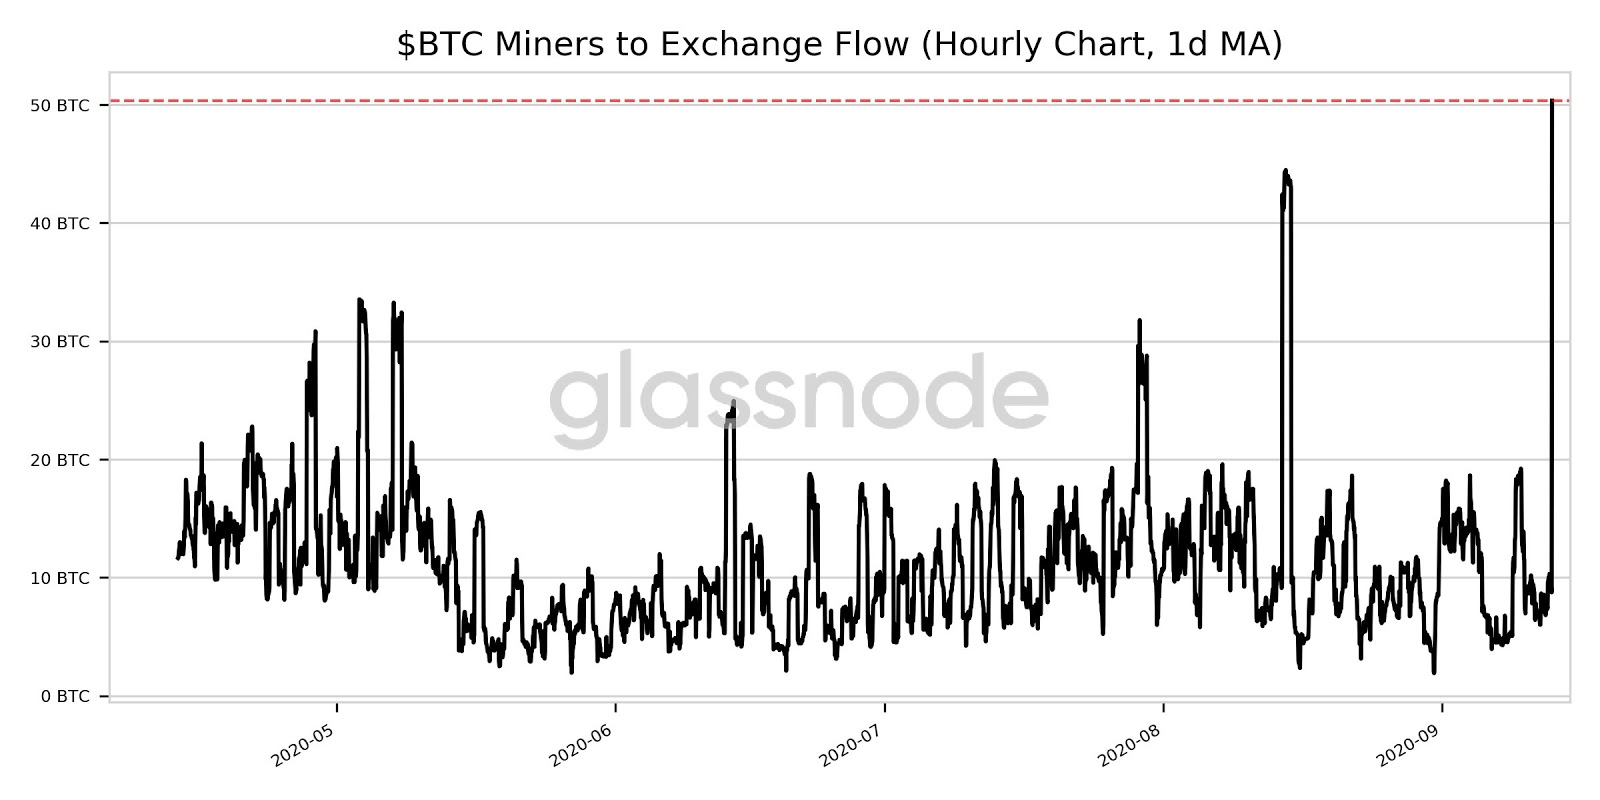 Bitcoin miners to exchange flow